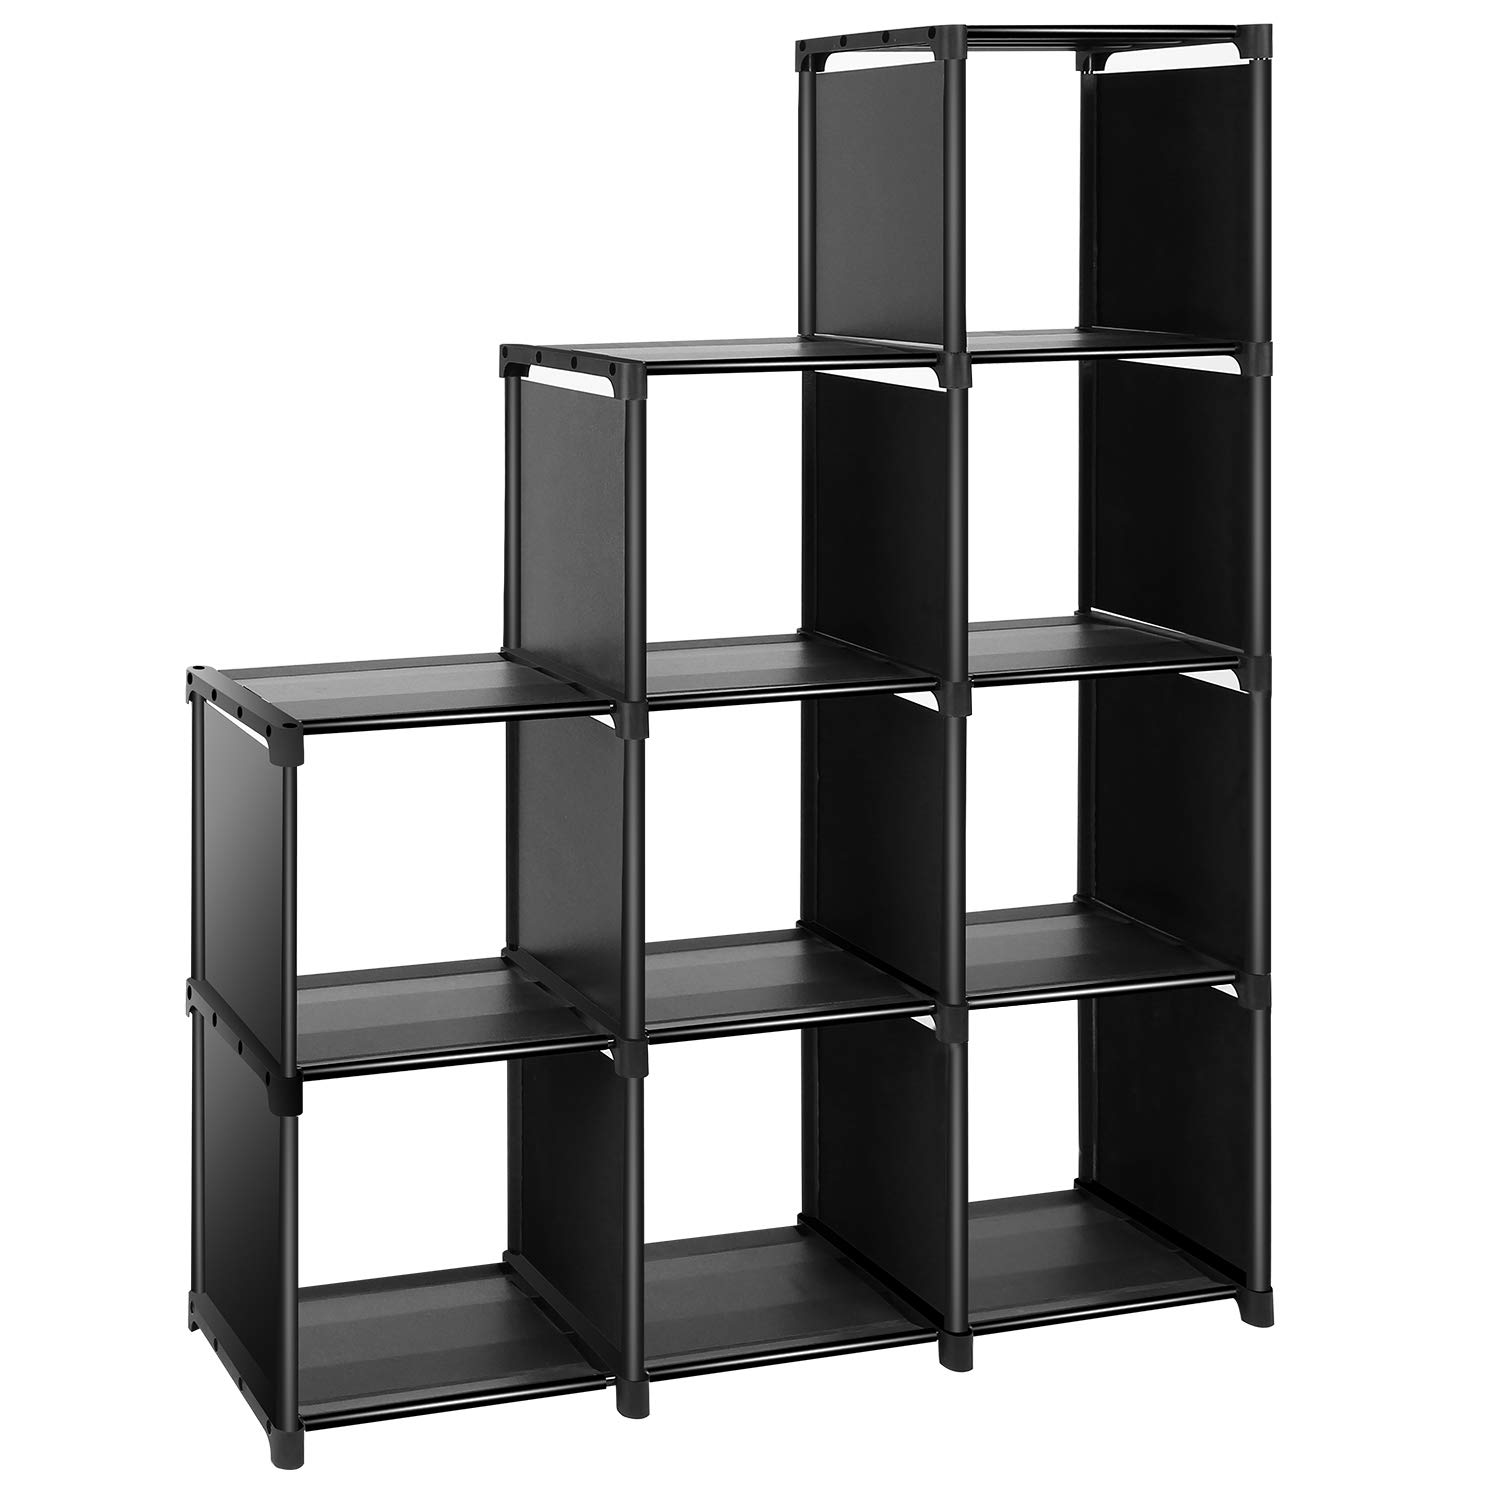 TomCare Cube Storage 9 Closet Organizer Shelves Bookcase Bookshelf Clothes Cabinets